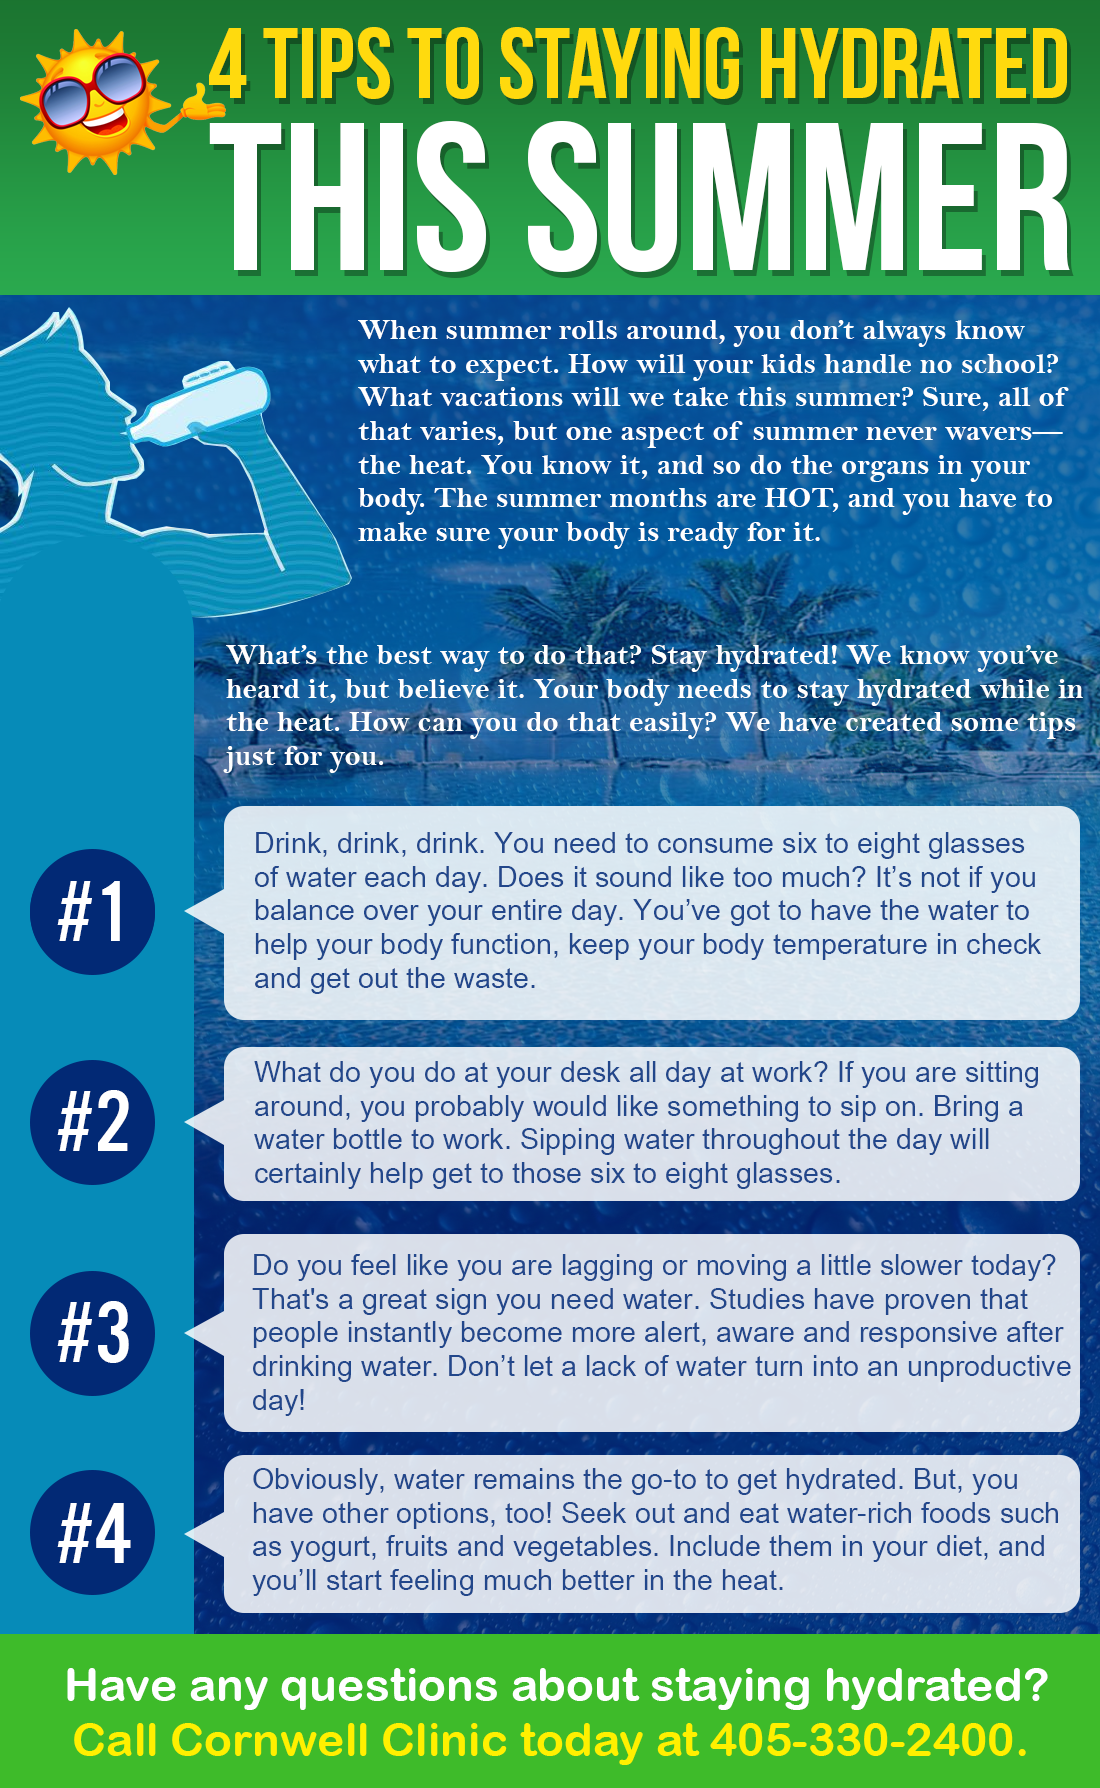 5 Tips To Staying Hydrated This Summer